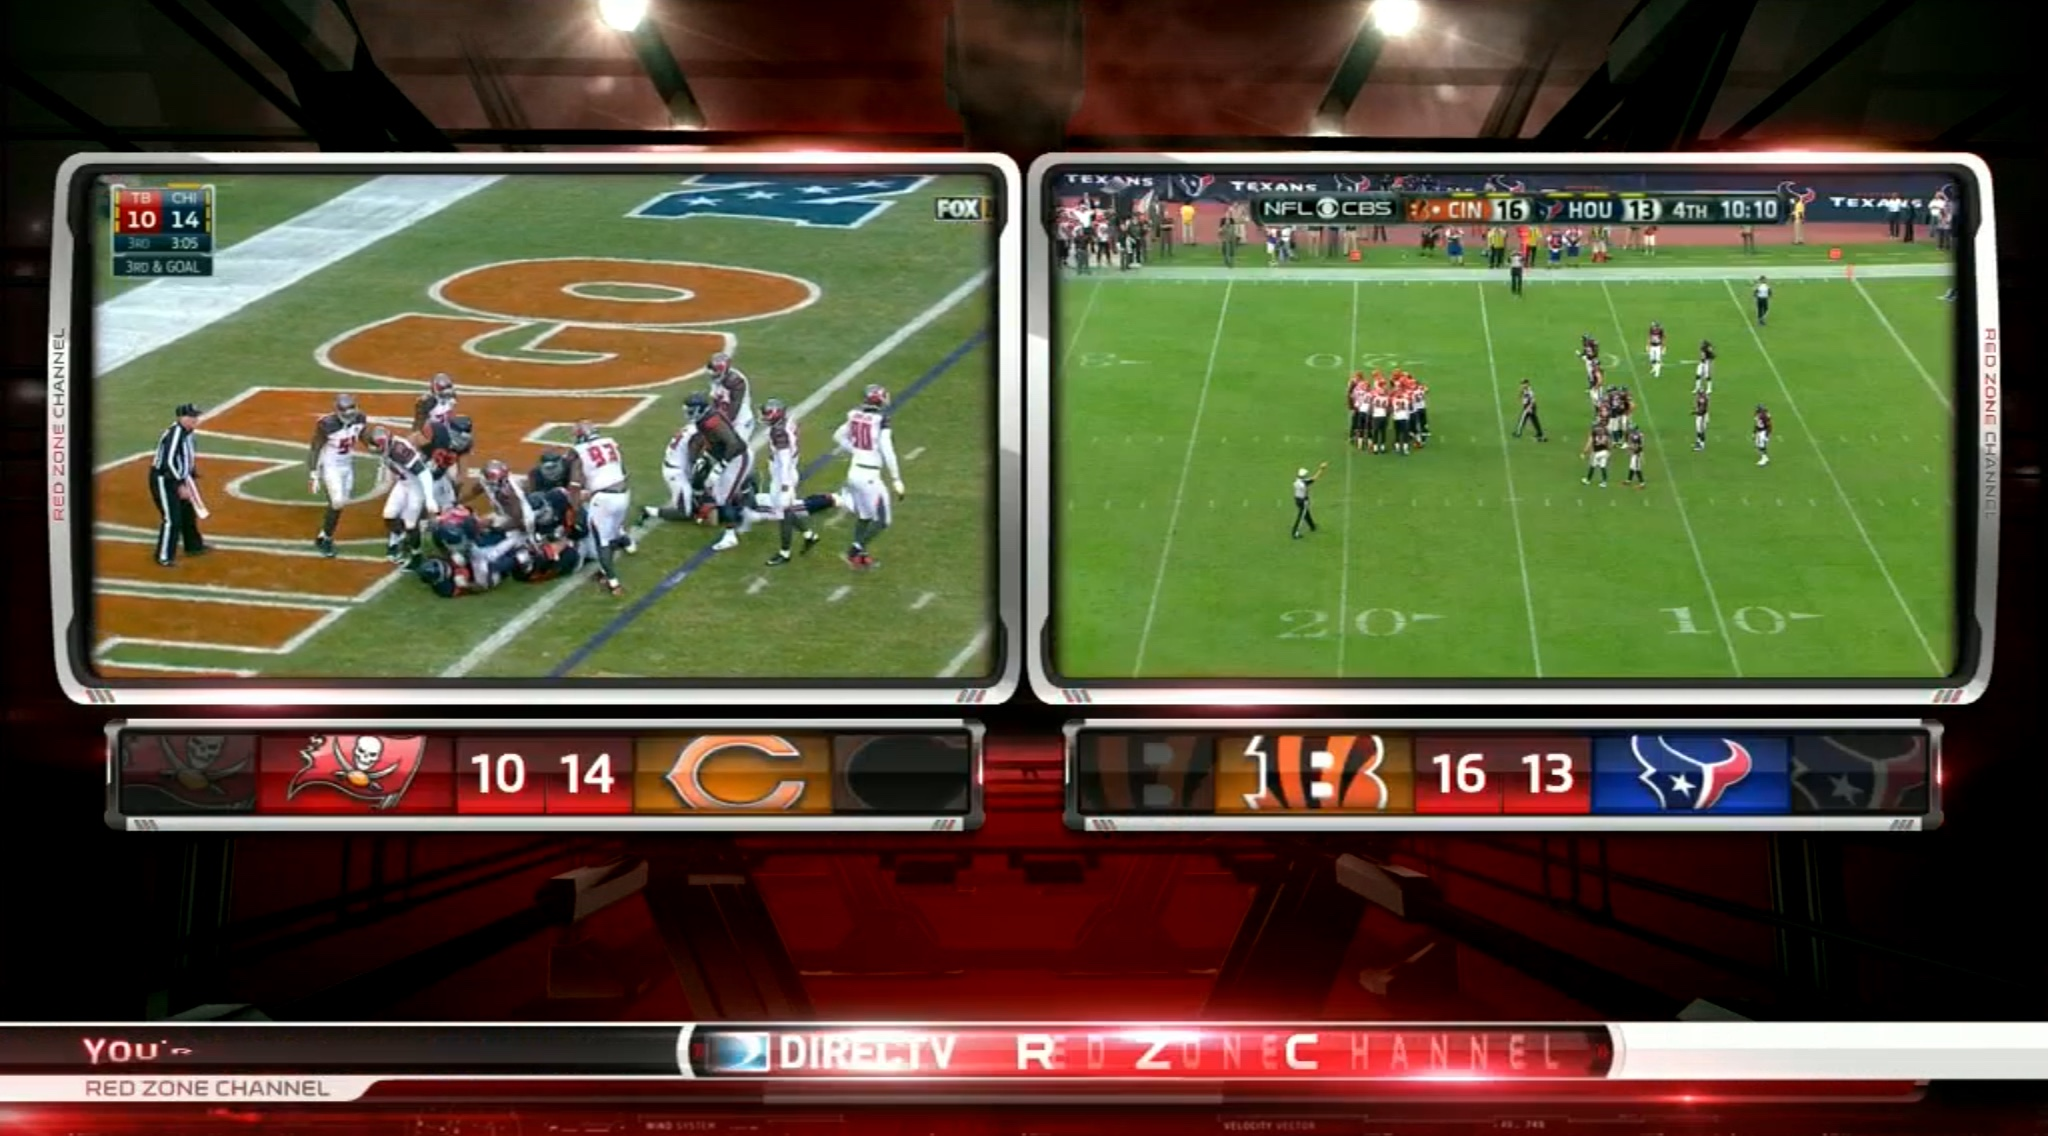 The AA Sunday Studio Spectacular: DirecTV's Red Zone Channel